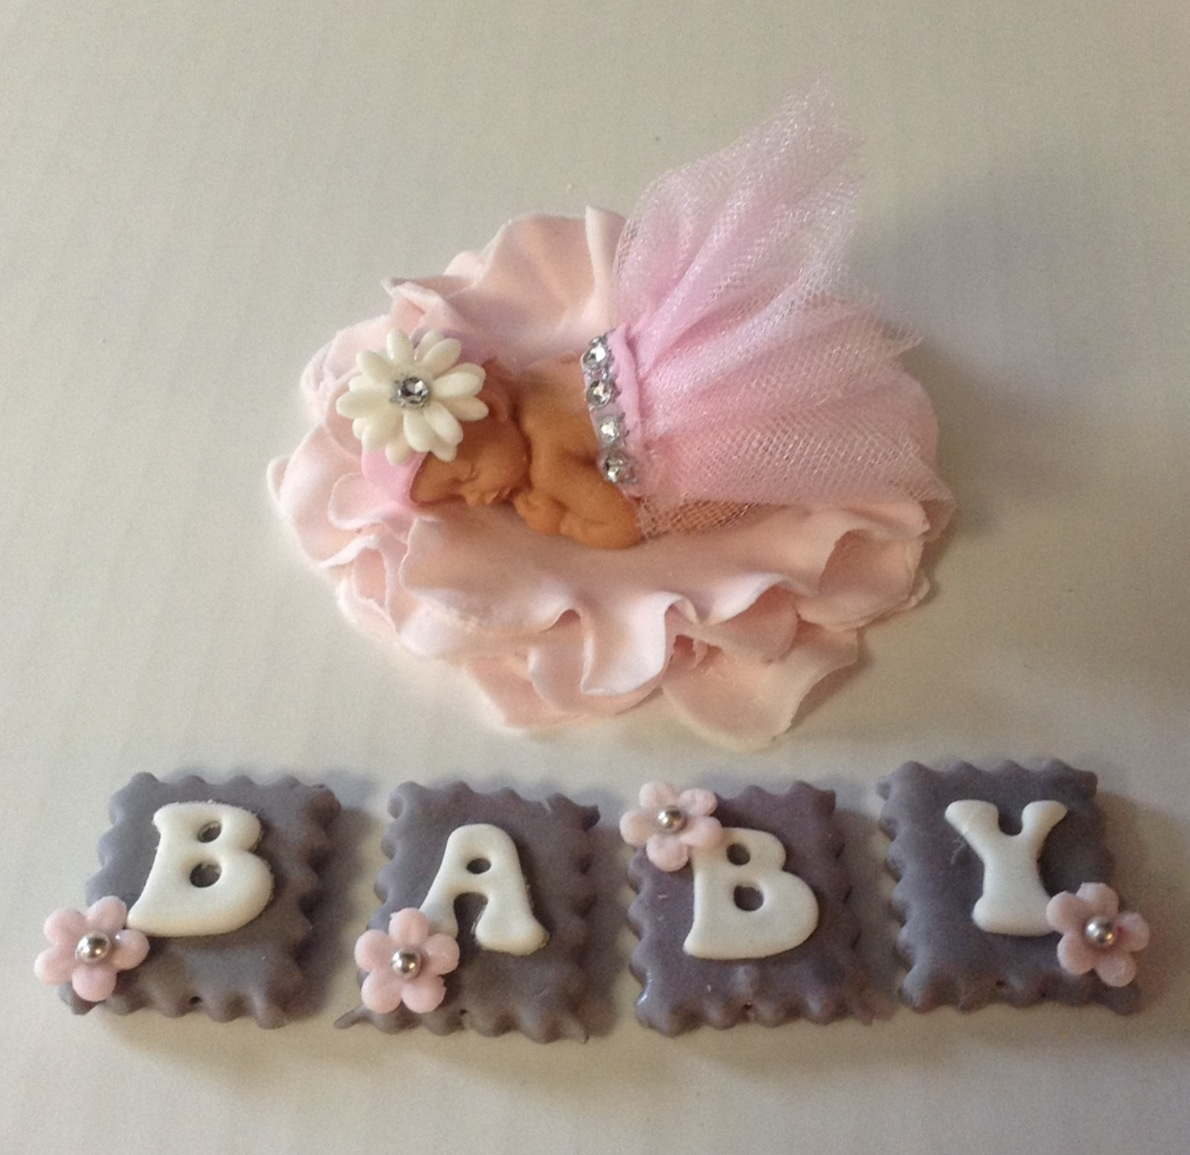 baby #BABY SHOWER CAKE TOPPER #baby shower #cake #tutu #FONDANT BABY ...